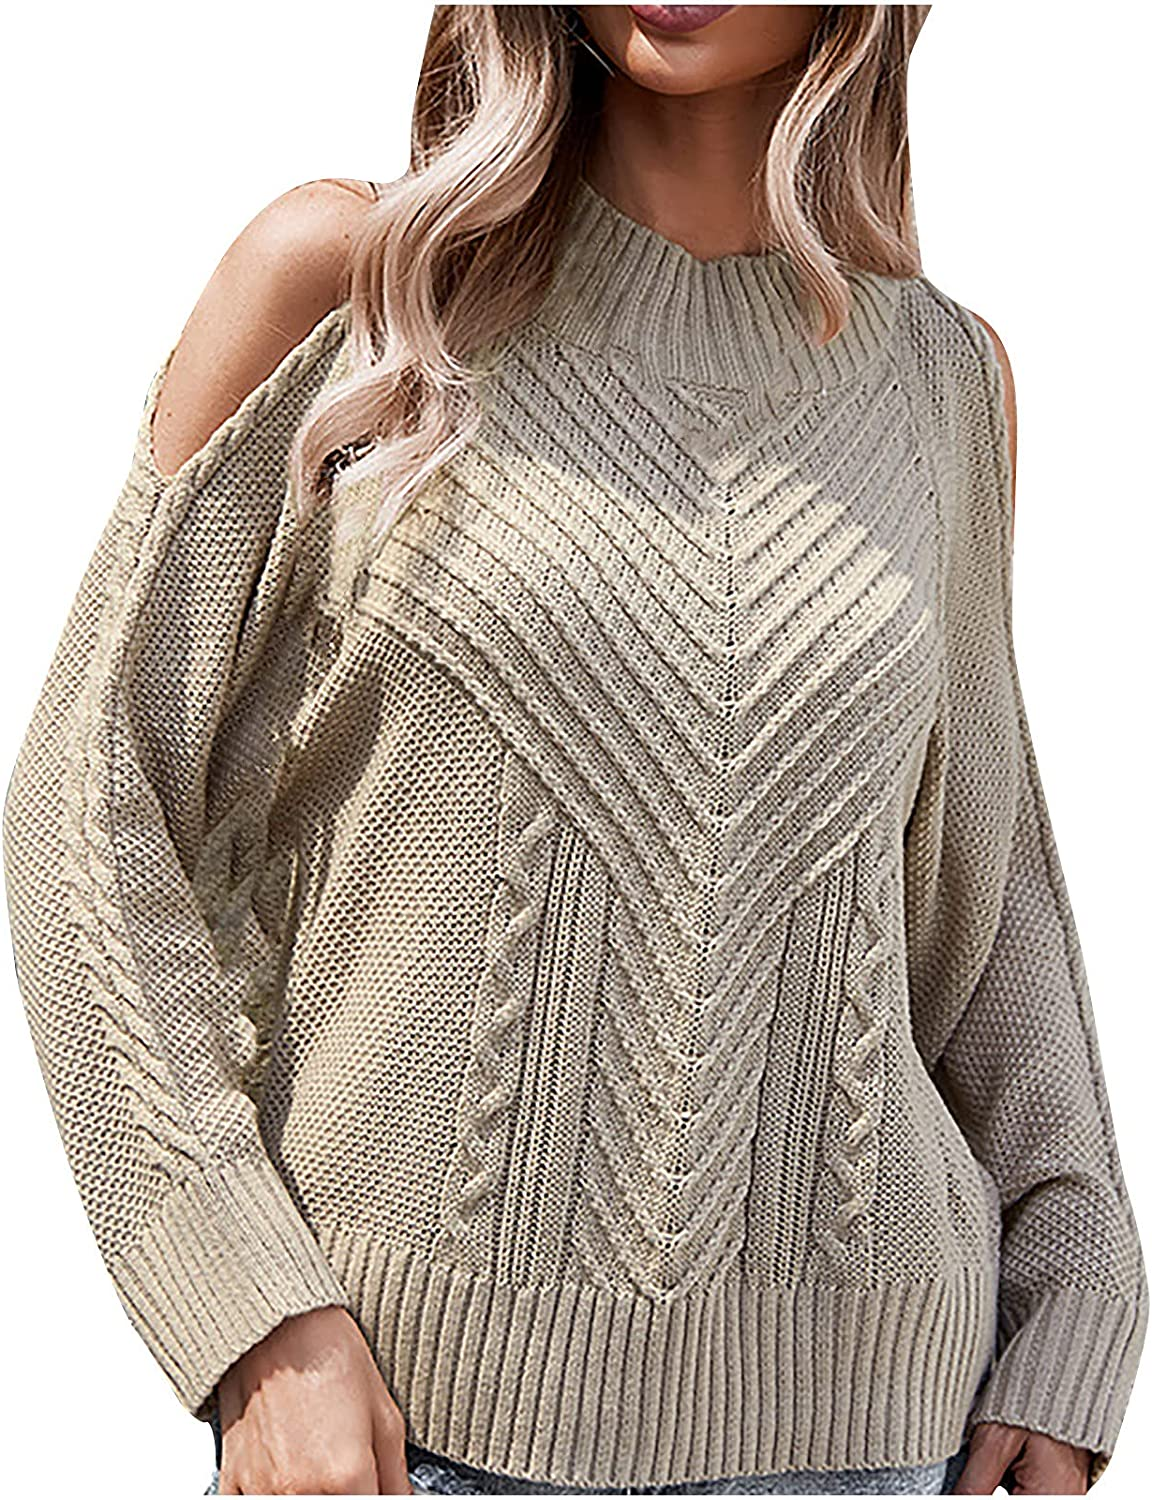 Women Casual Store Loose Long Sleeve Winter Knitted Swea Shoulder 35% OFF Cold